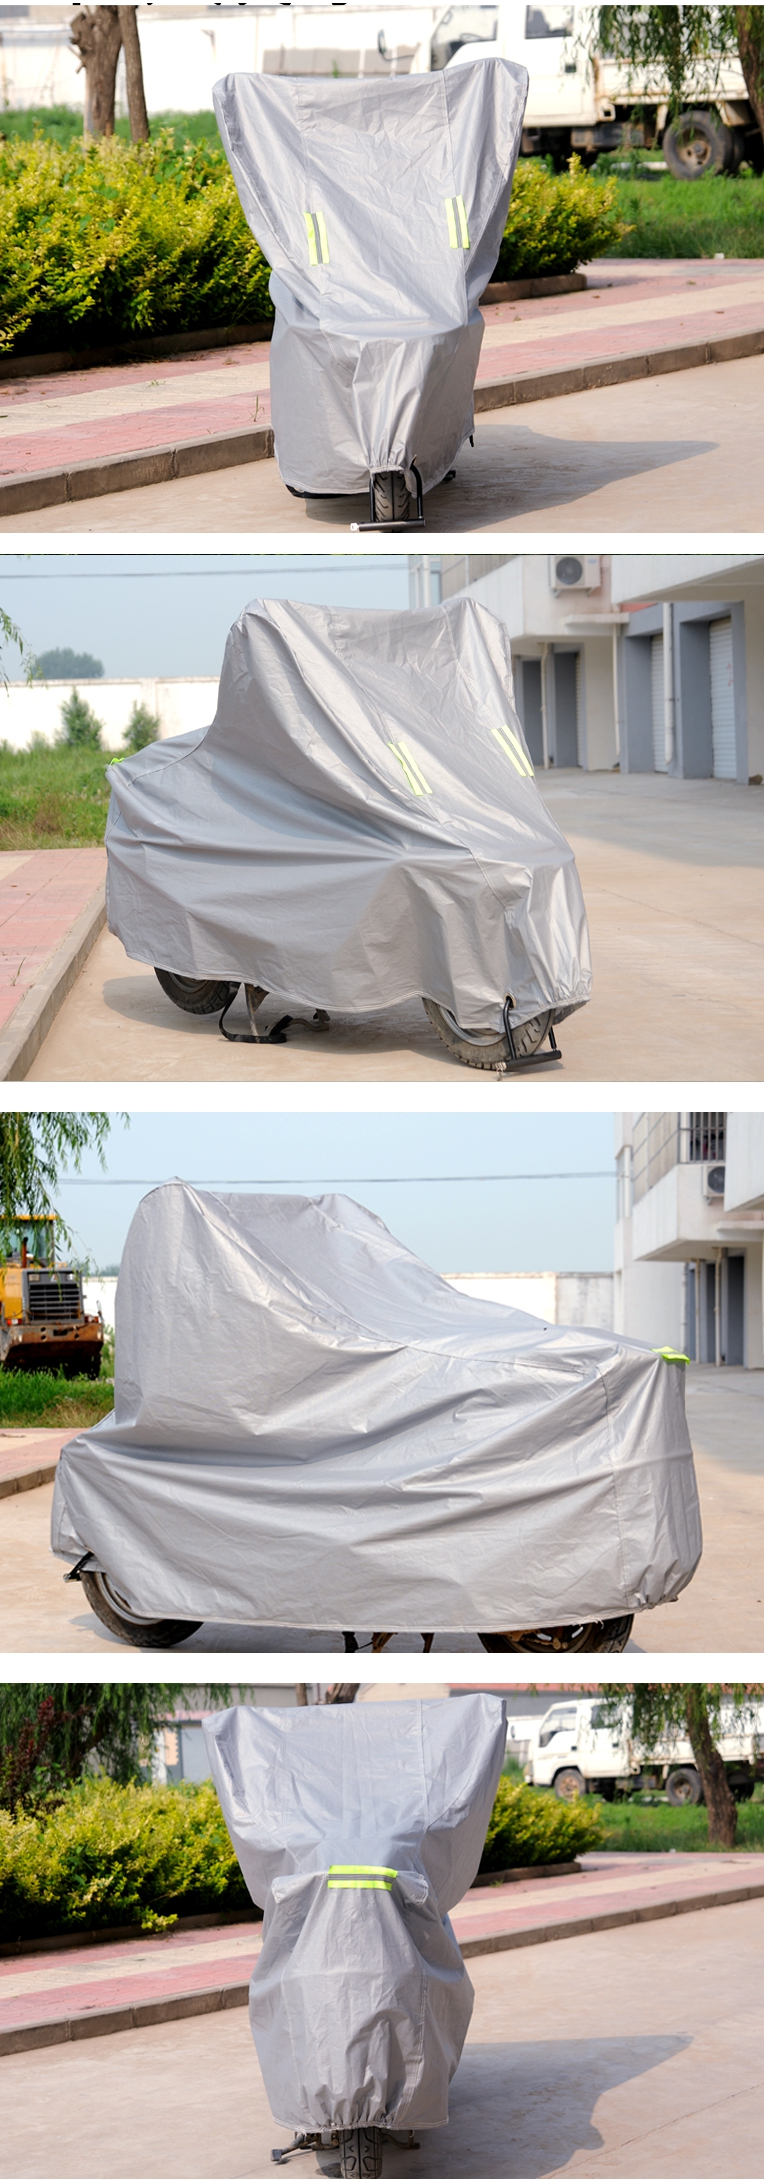 Motorcycle Scooter Bike Rain Covers Waterproof Sunproof Protective Thicken Breathable S-L